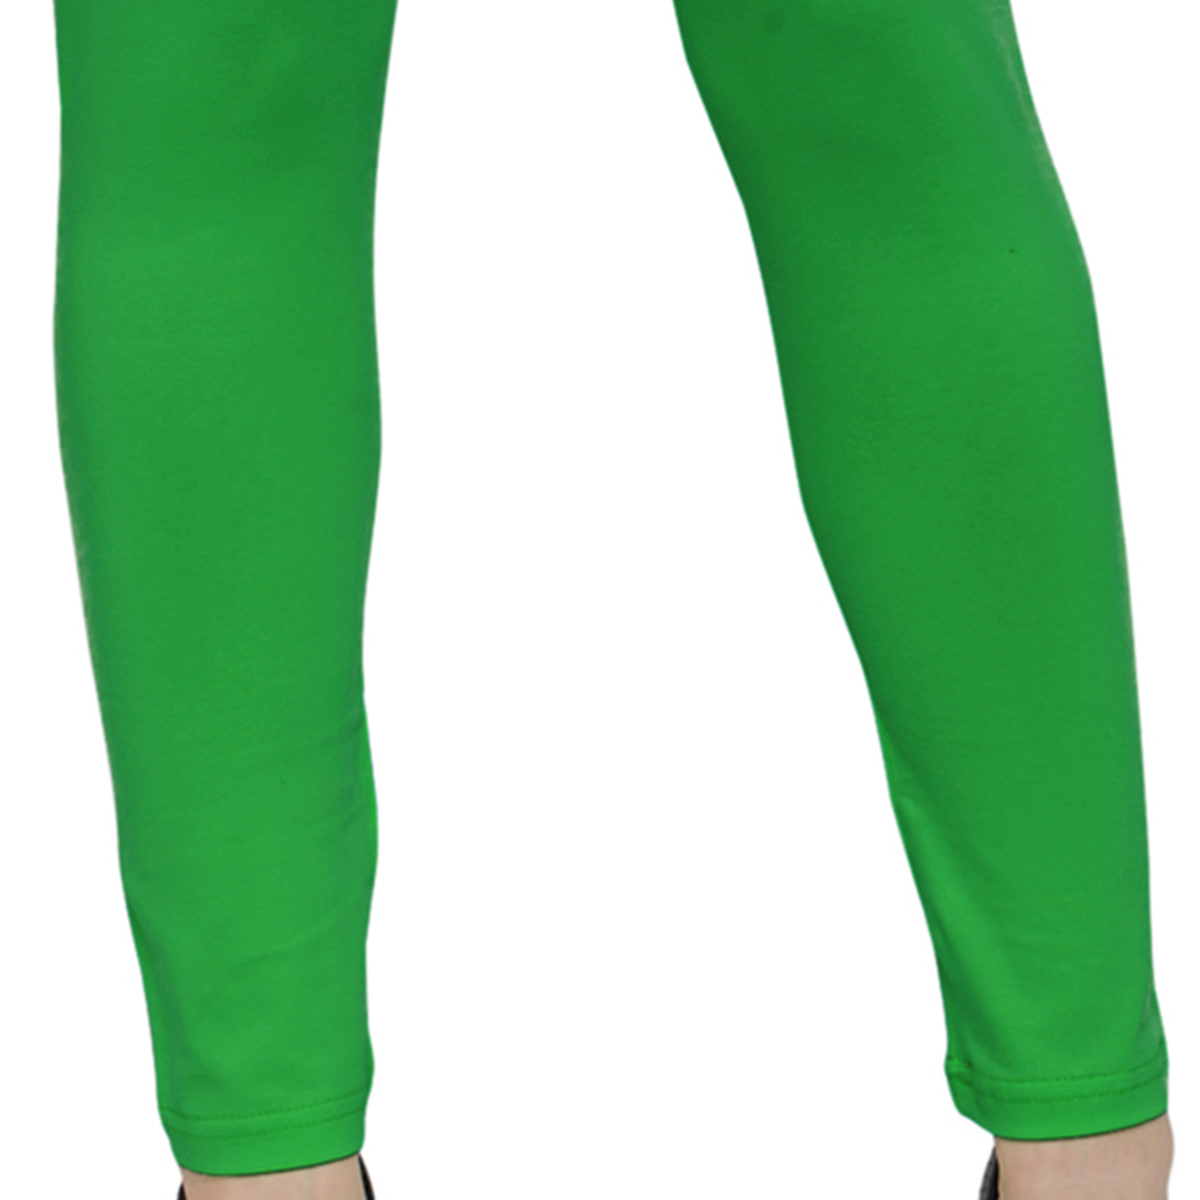 Absorbing Green Colored Casual Wear Ankle Length Leggings